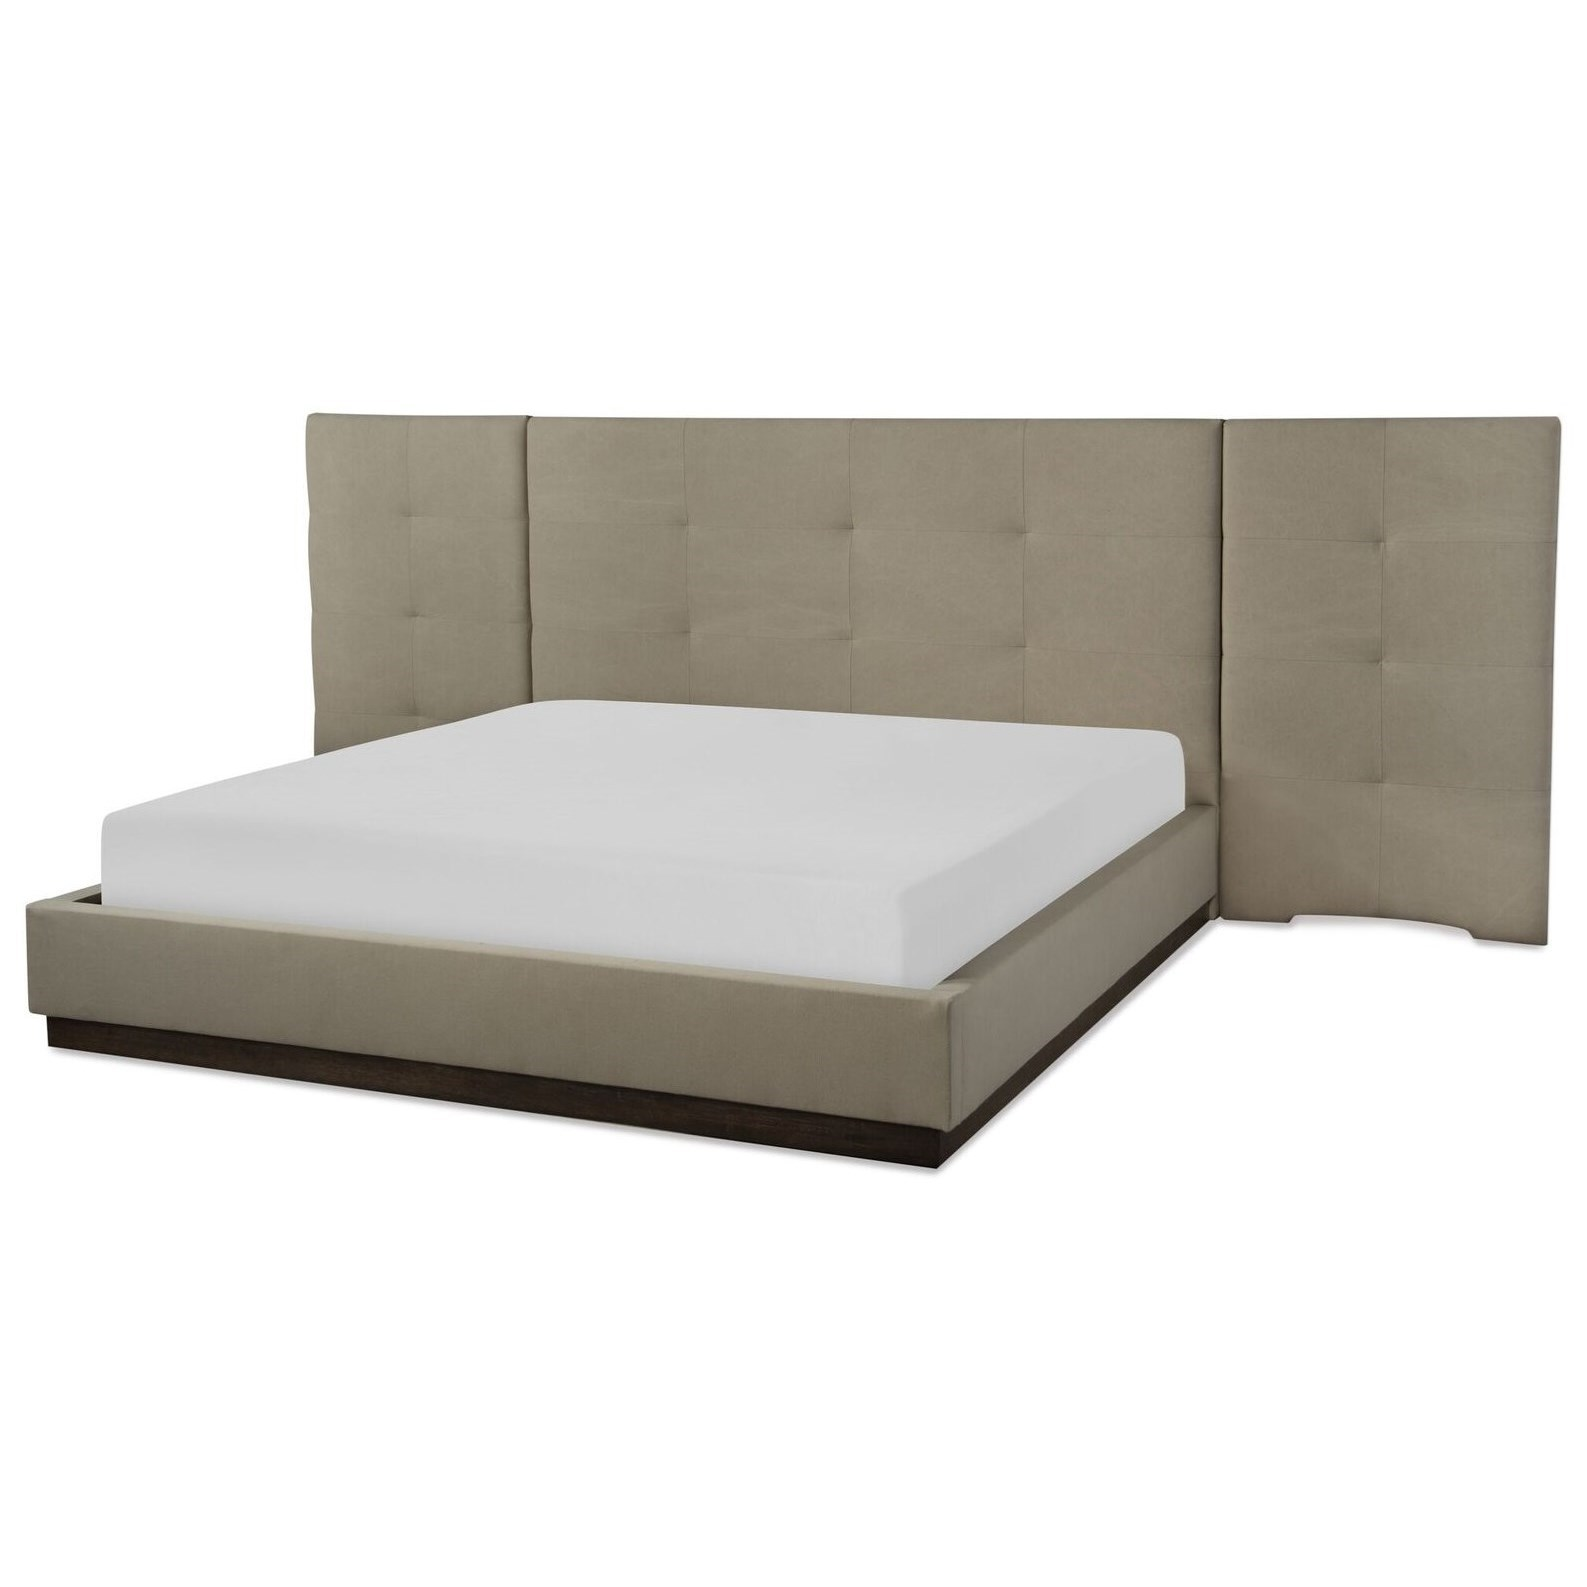 CA King Upholstered Wall Bed w/ Panels